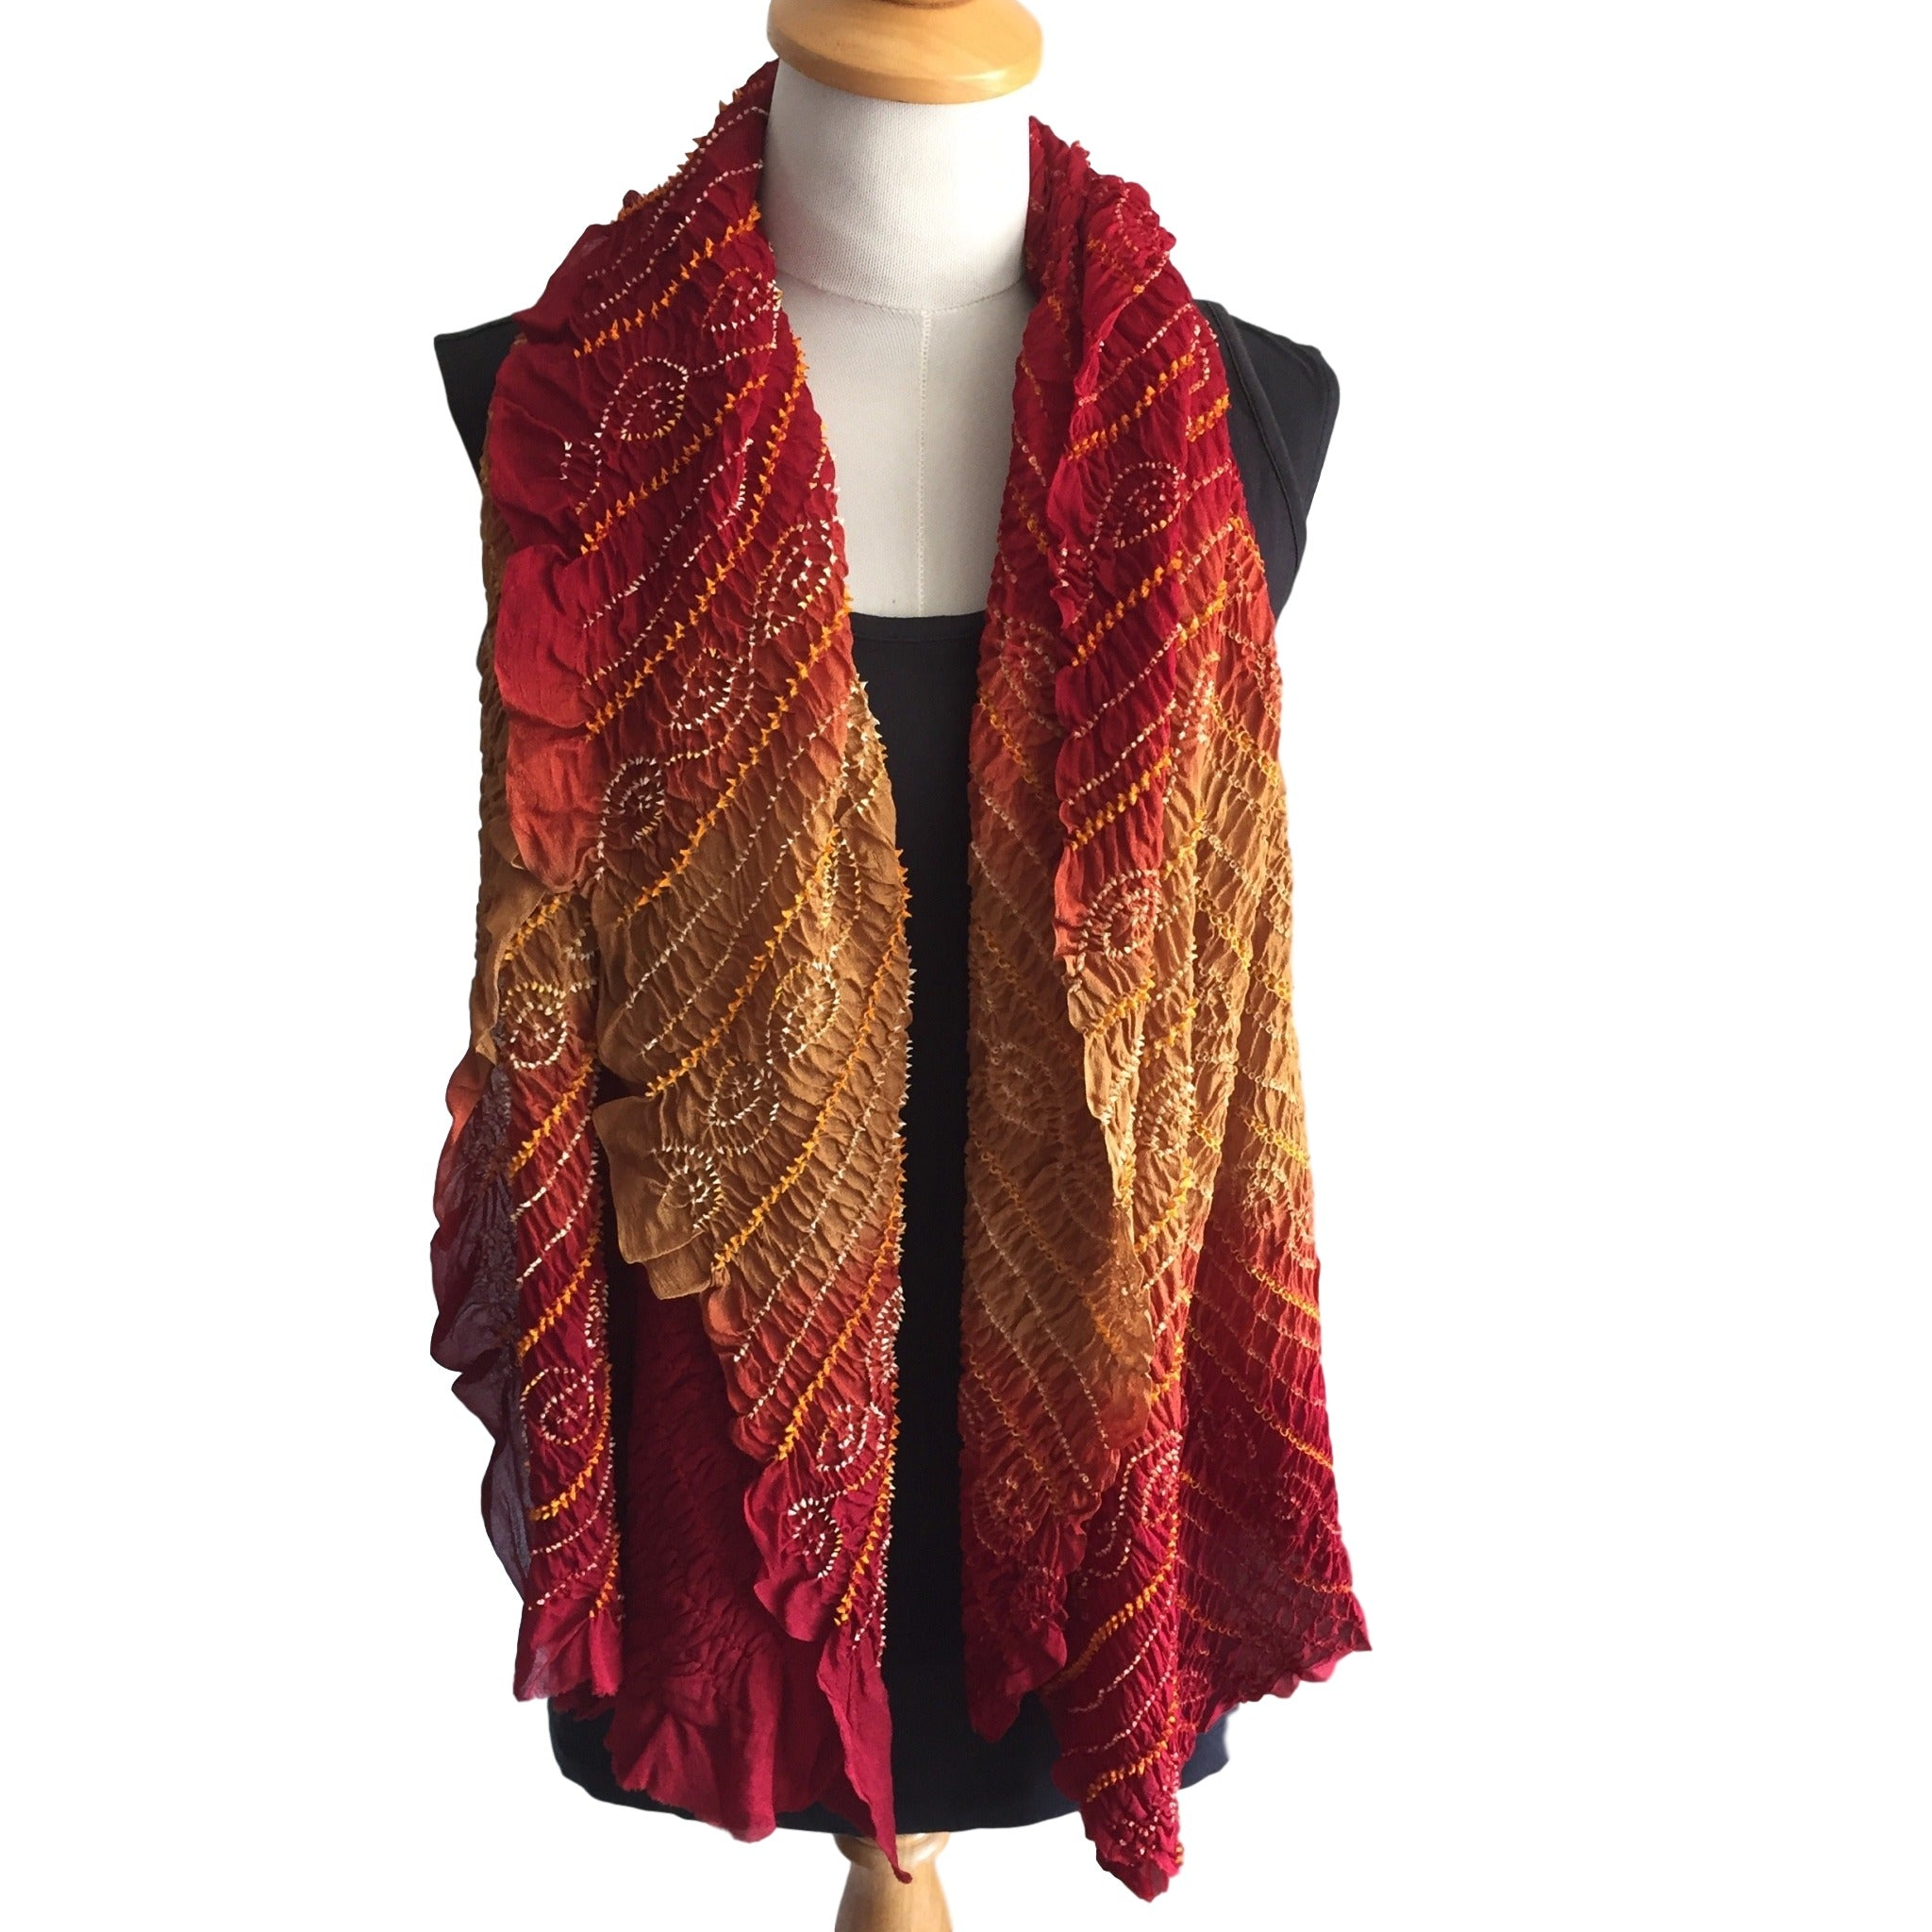 Bandhani Scarf in Silk Crepe - Earthy tones of Red and Mocha - Pallu Design